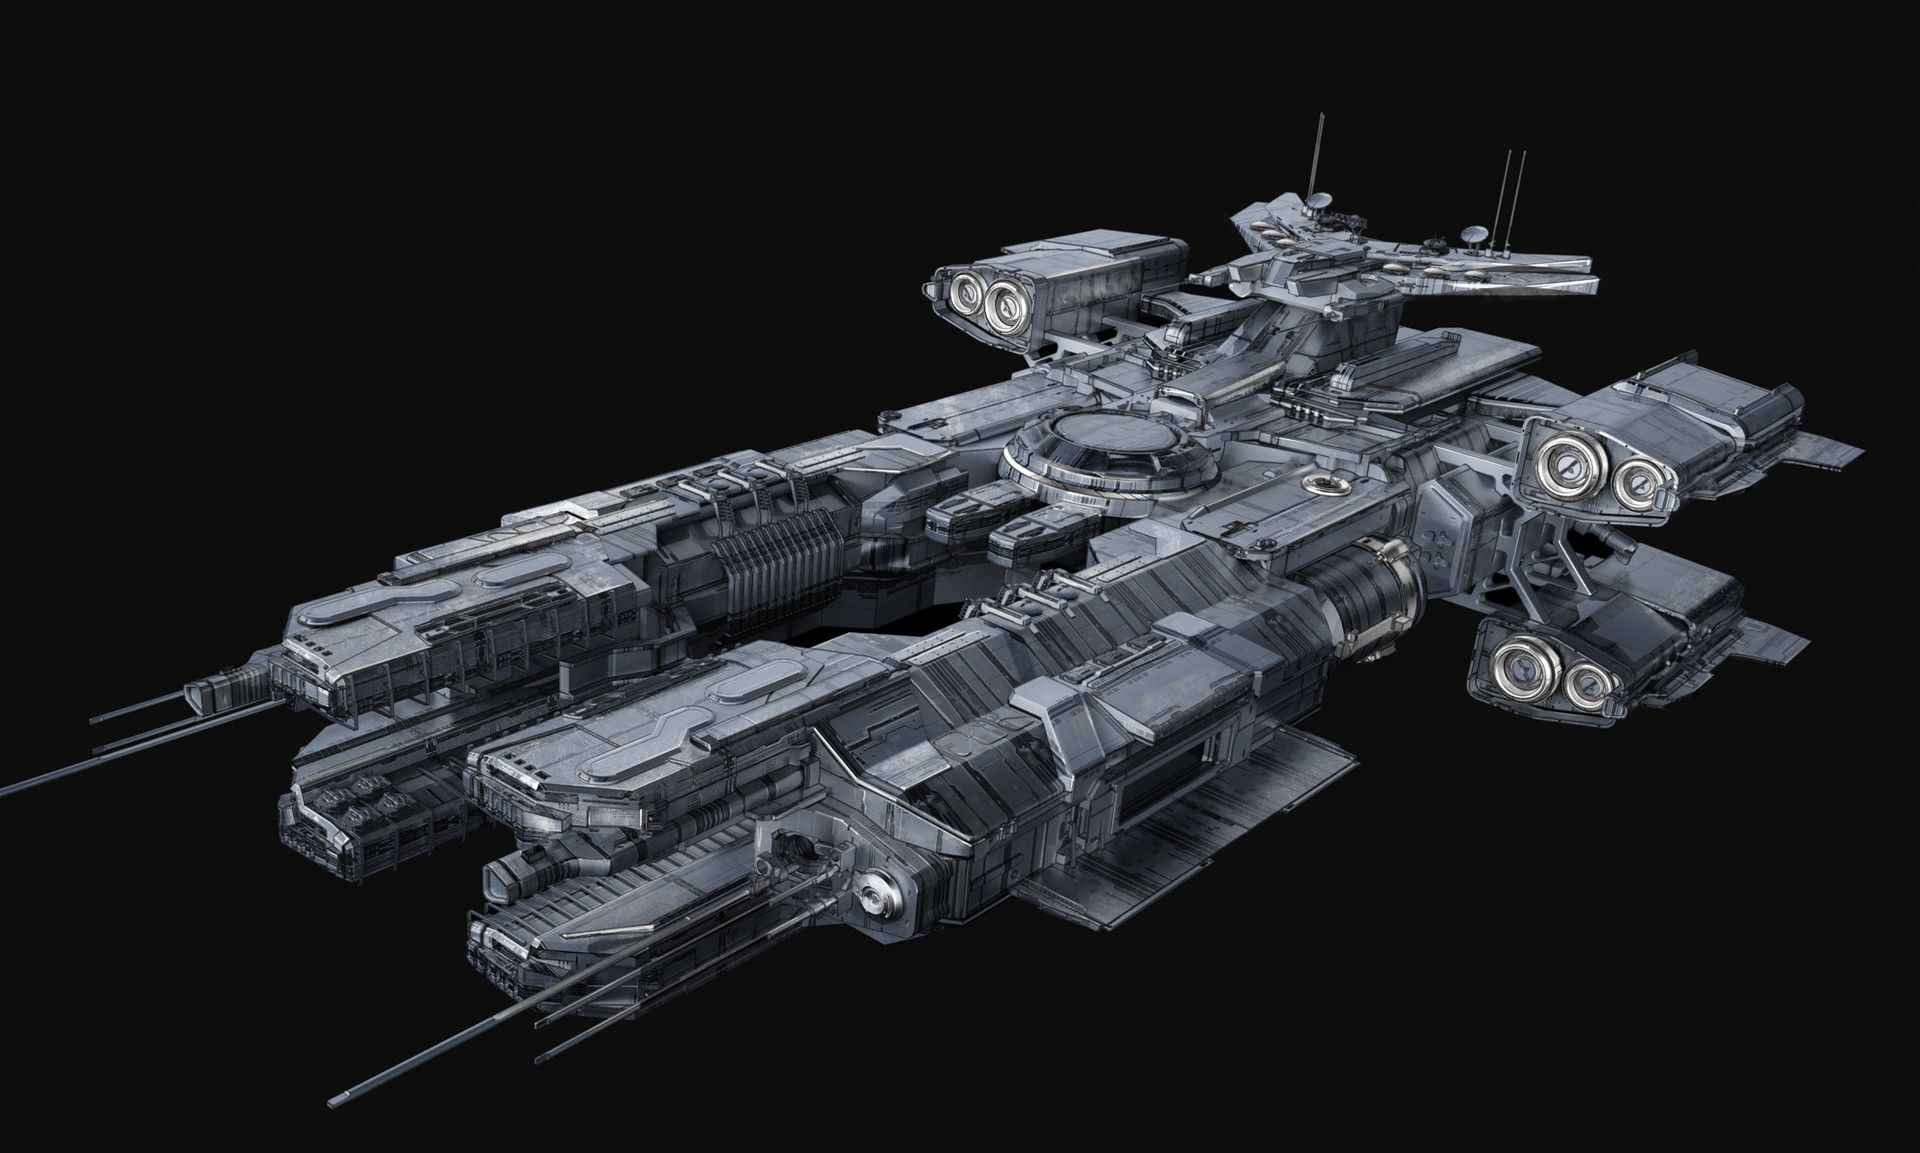 The Federal Corvette Is A Ship I Modeled While Working On